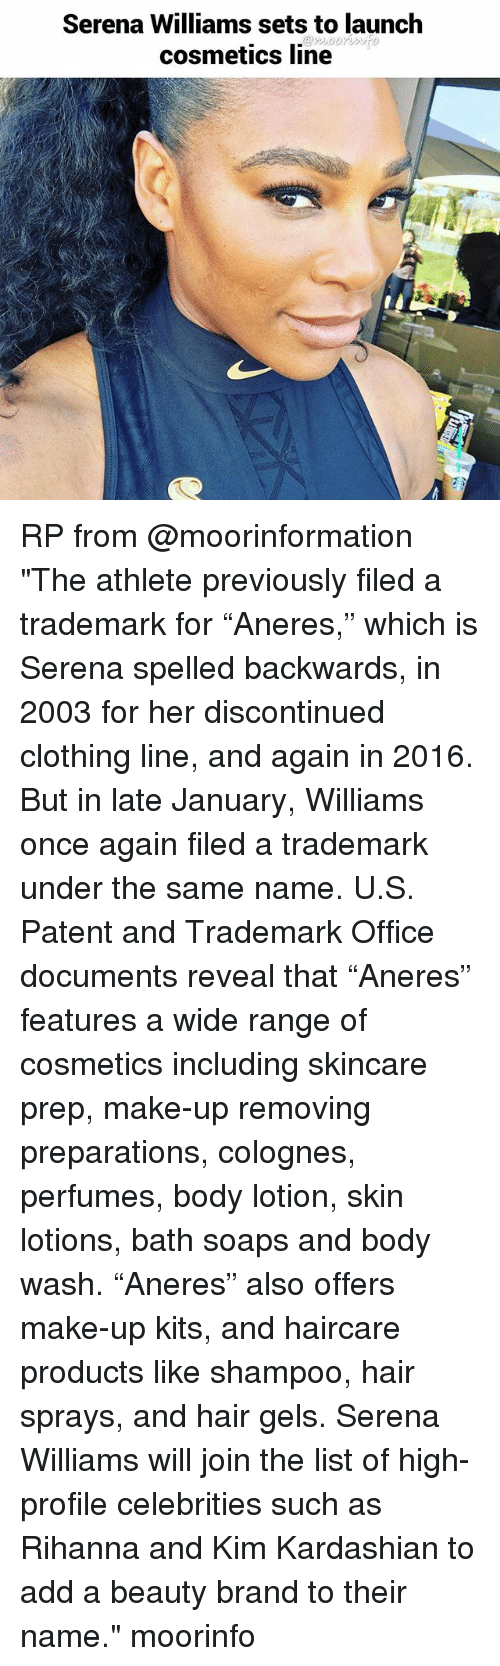 """Kim Kardashian, Memes, and Rihanna: Serena Williams sets to launch  cosmetics line RP from @moorinformation """"The athlete previously filed a trademark for """"Aneres,"""" which is Serena spelled backwards, in 2003 for her discontinued clothing line, and again in 2016. But in late January, Williams once again filed a trademark under the same name. U.S. Patent and Trademark Office documents reveal that """"Aneres"""" features a wide range of cosmetics including skincare prep, make-up removing preparations, colognes, perfumes, body lotion, skin lotions, bath soaps and body wash. """"Aneres"""" also offers make-up kits, and haircare products like shampoo, hair sprays, and hair gels. Serena Williams will join the list of high-profile celebrities such as Rihanna and Kim Kardashian to add a beauty brand to their name."""" moorinfo"""